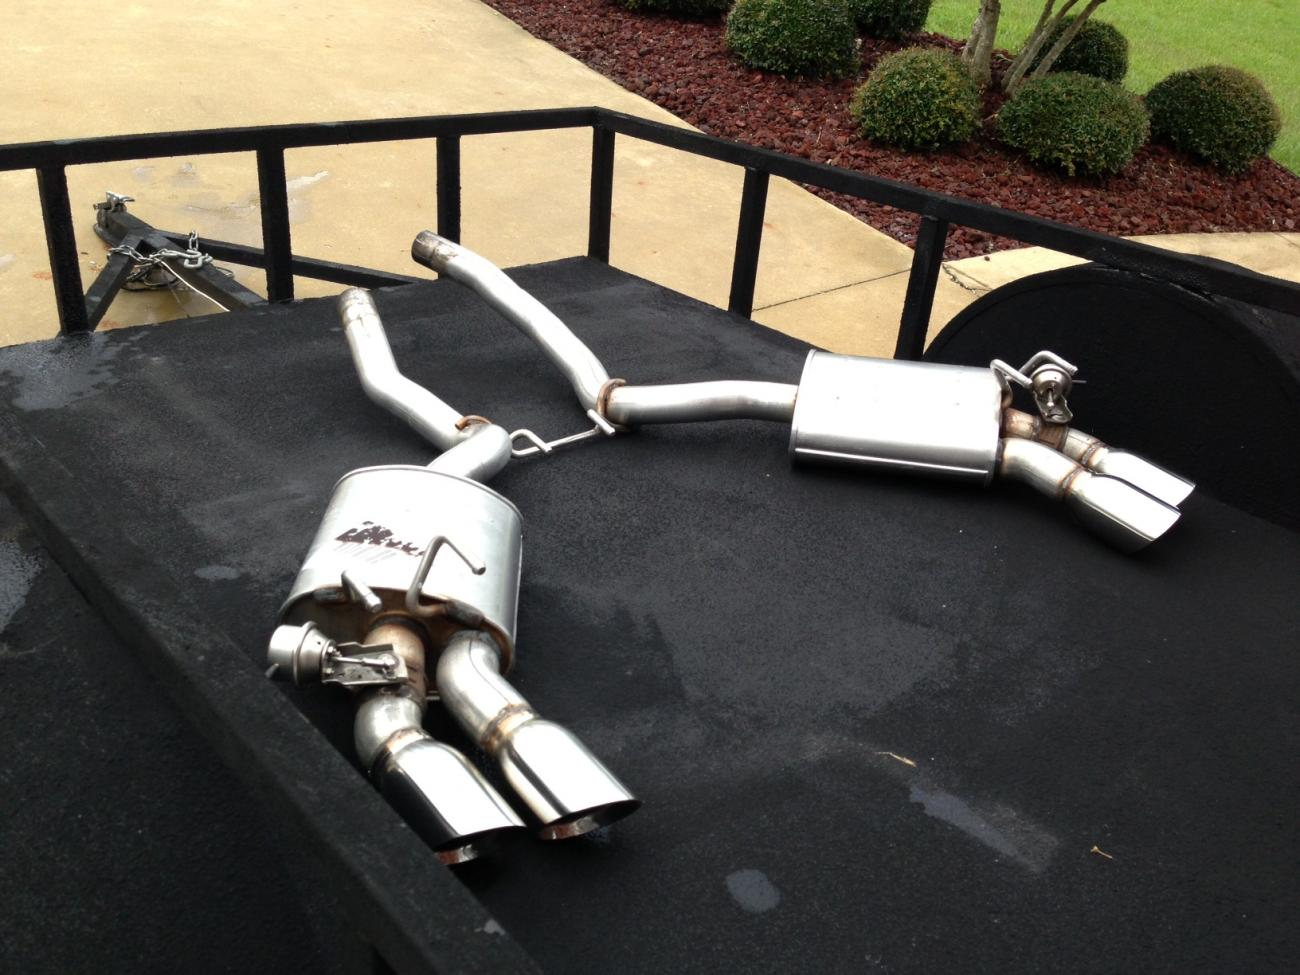 zl1 exhaust for sale - camaro5 chevy camaro forum    camaro zl1  ss and v6 forums